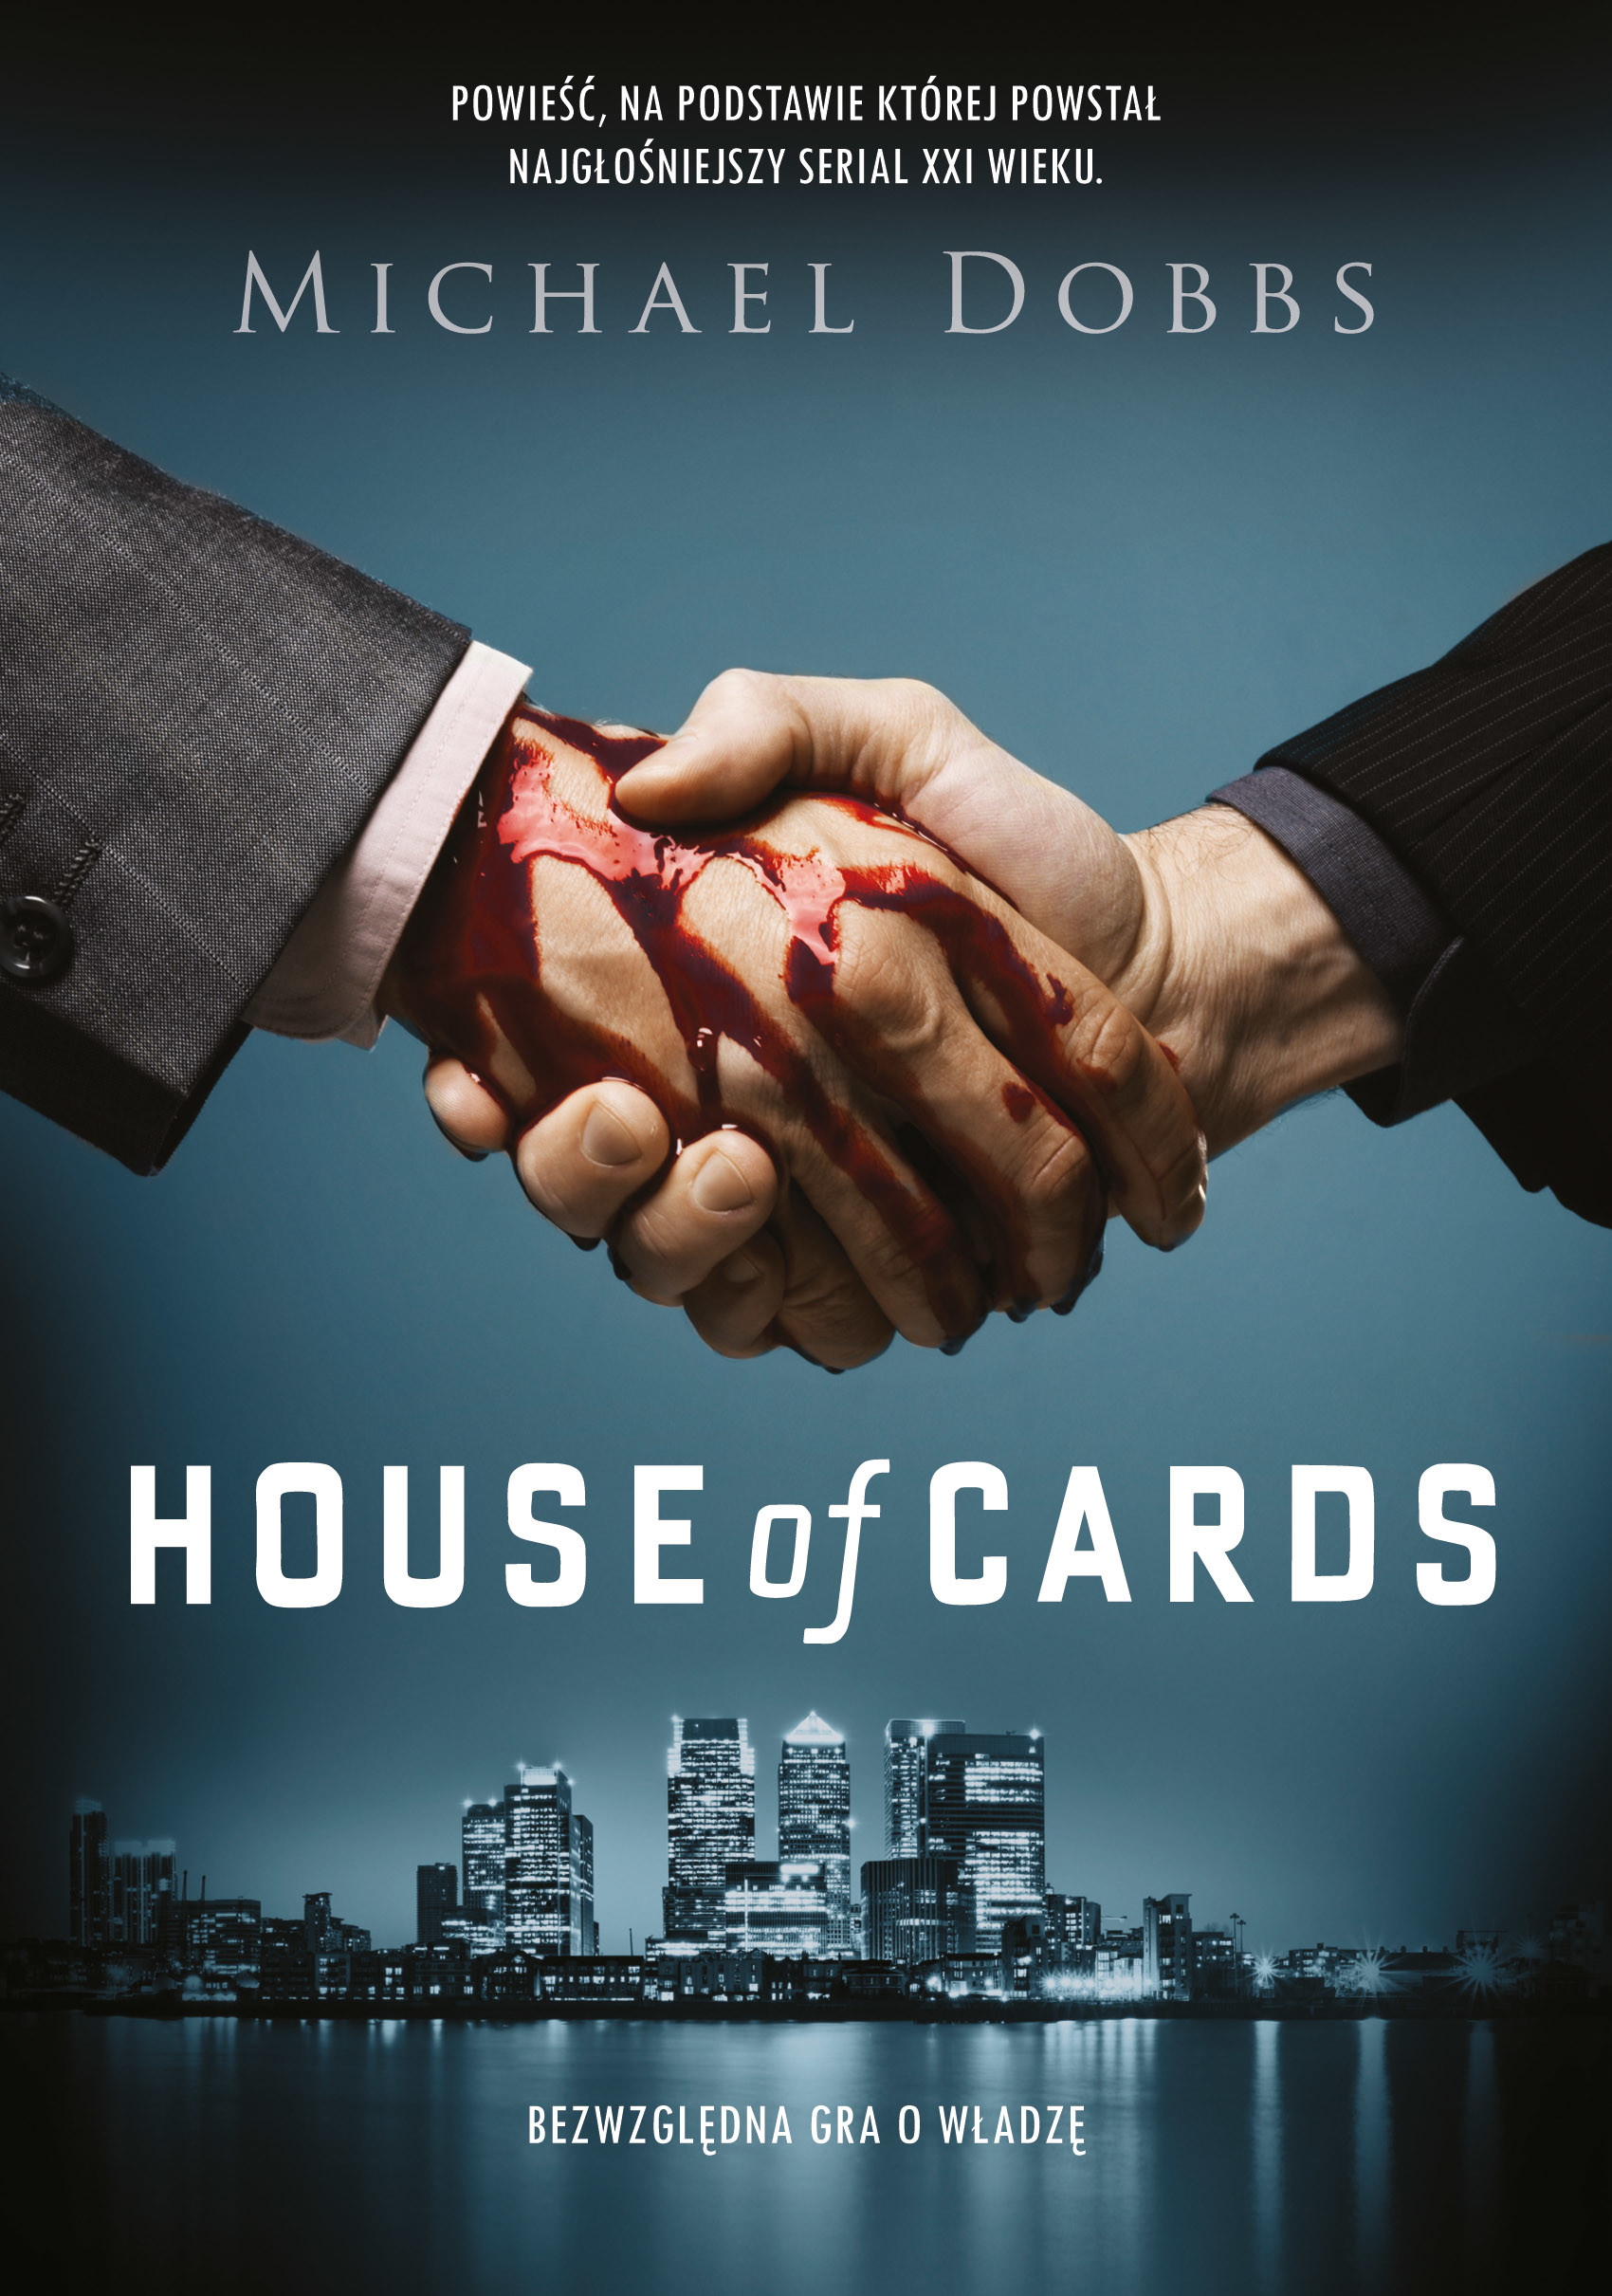 House Of Cards wallpaper for iPhone